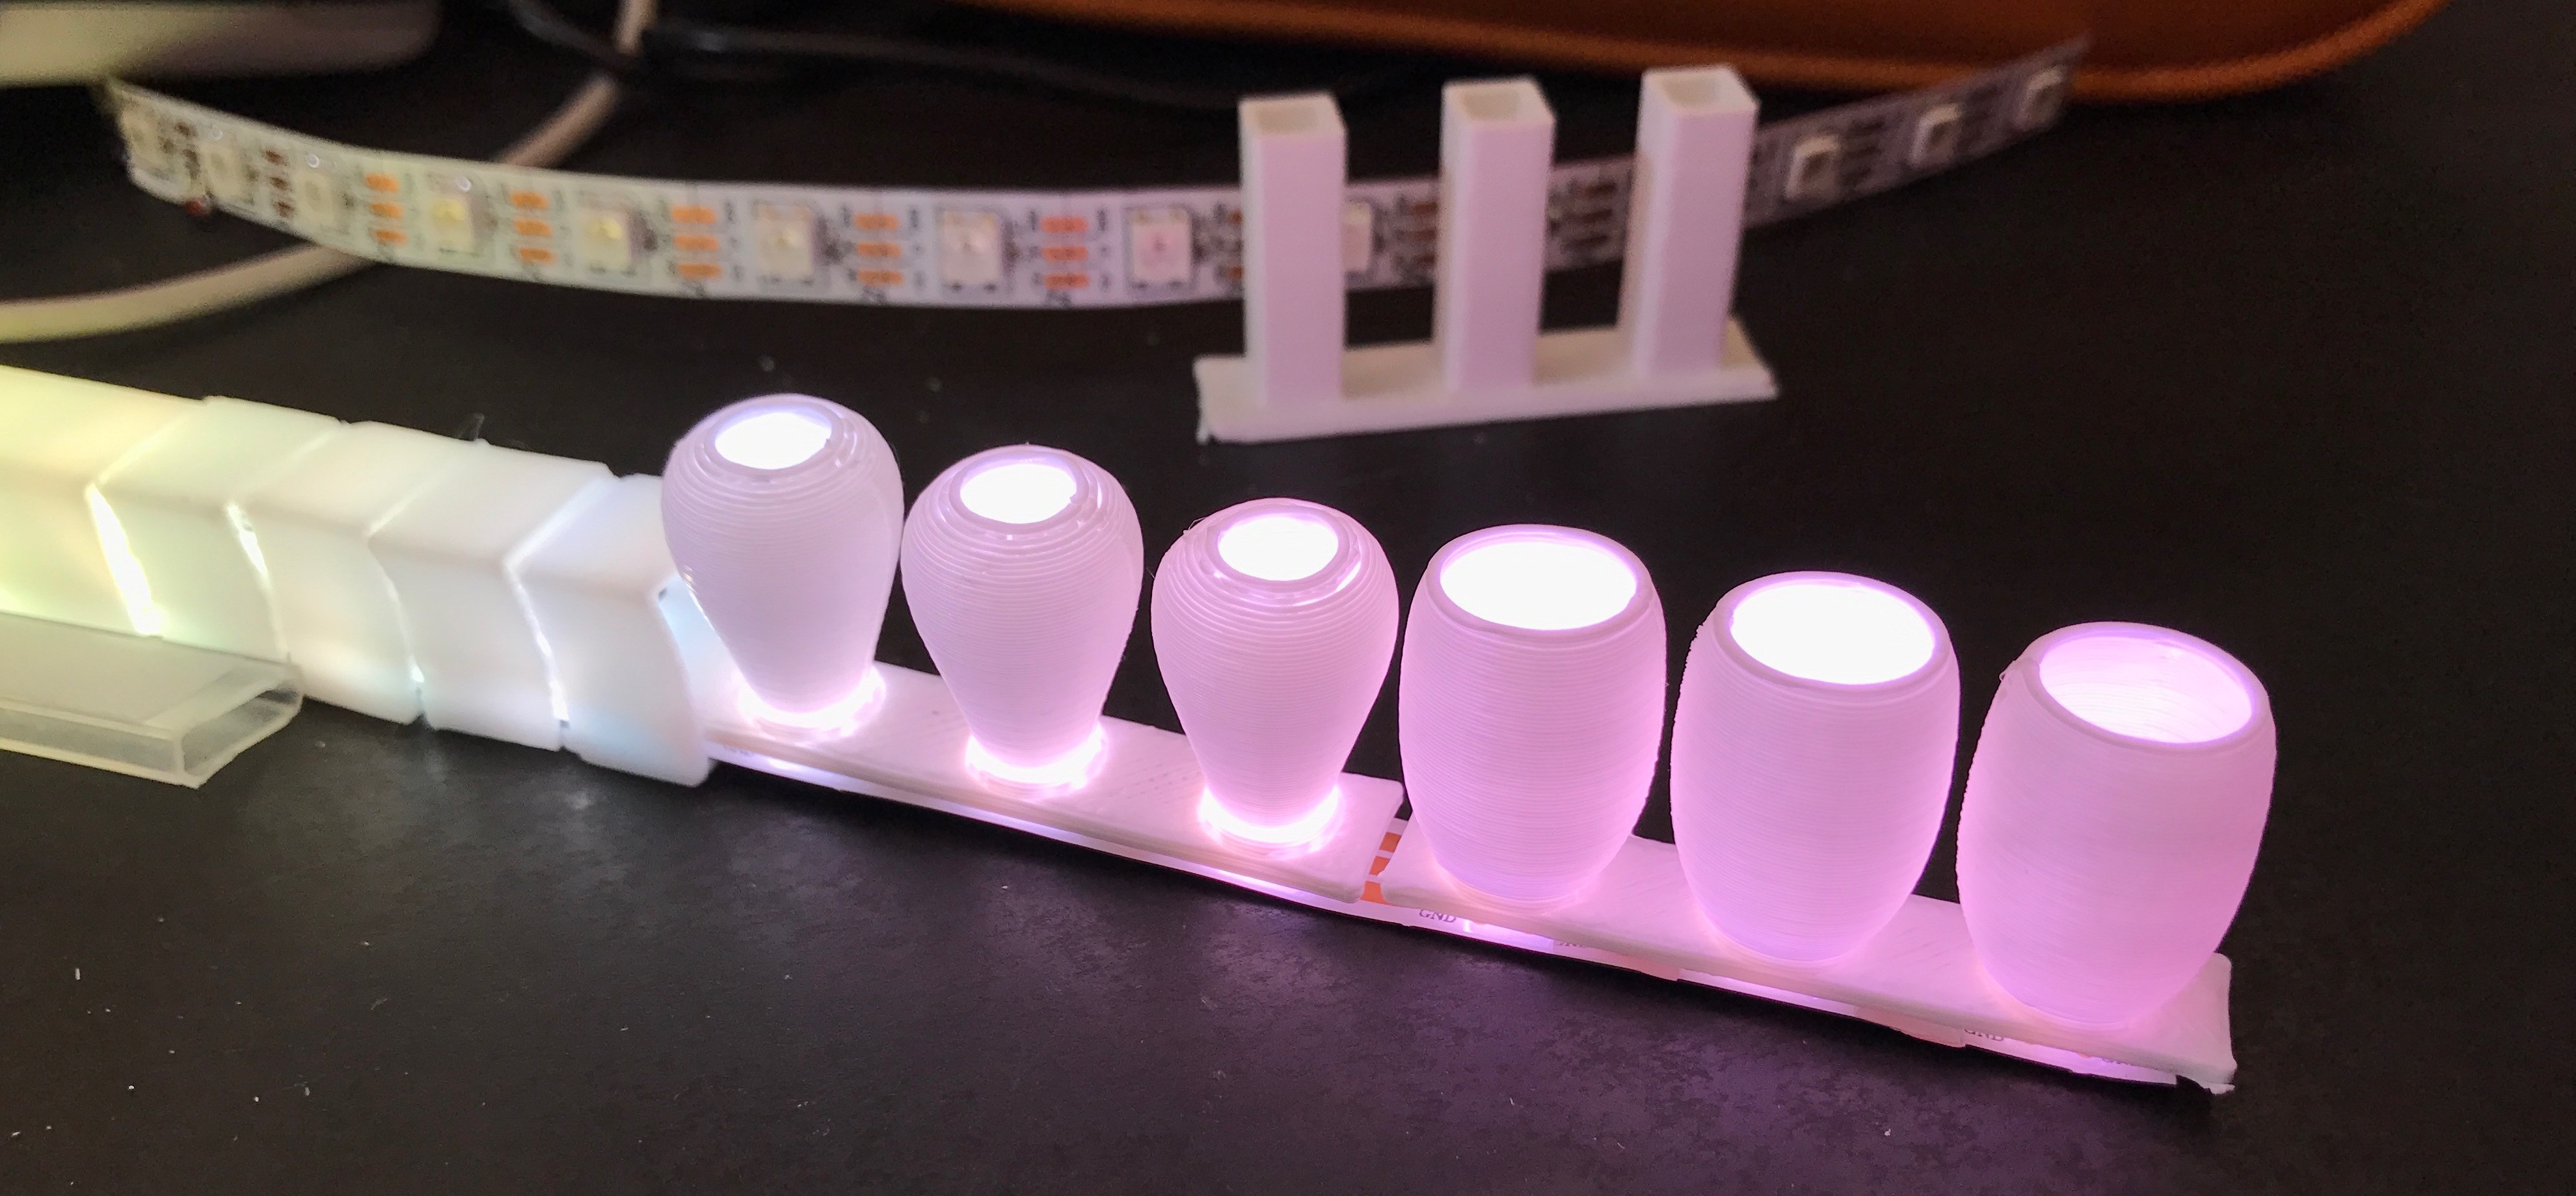 LED diffusion experiments, some results | Details | Hackaday io